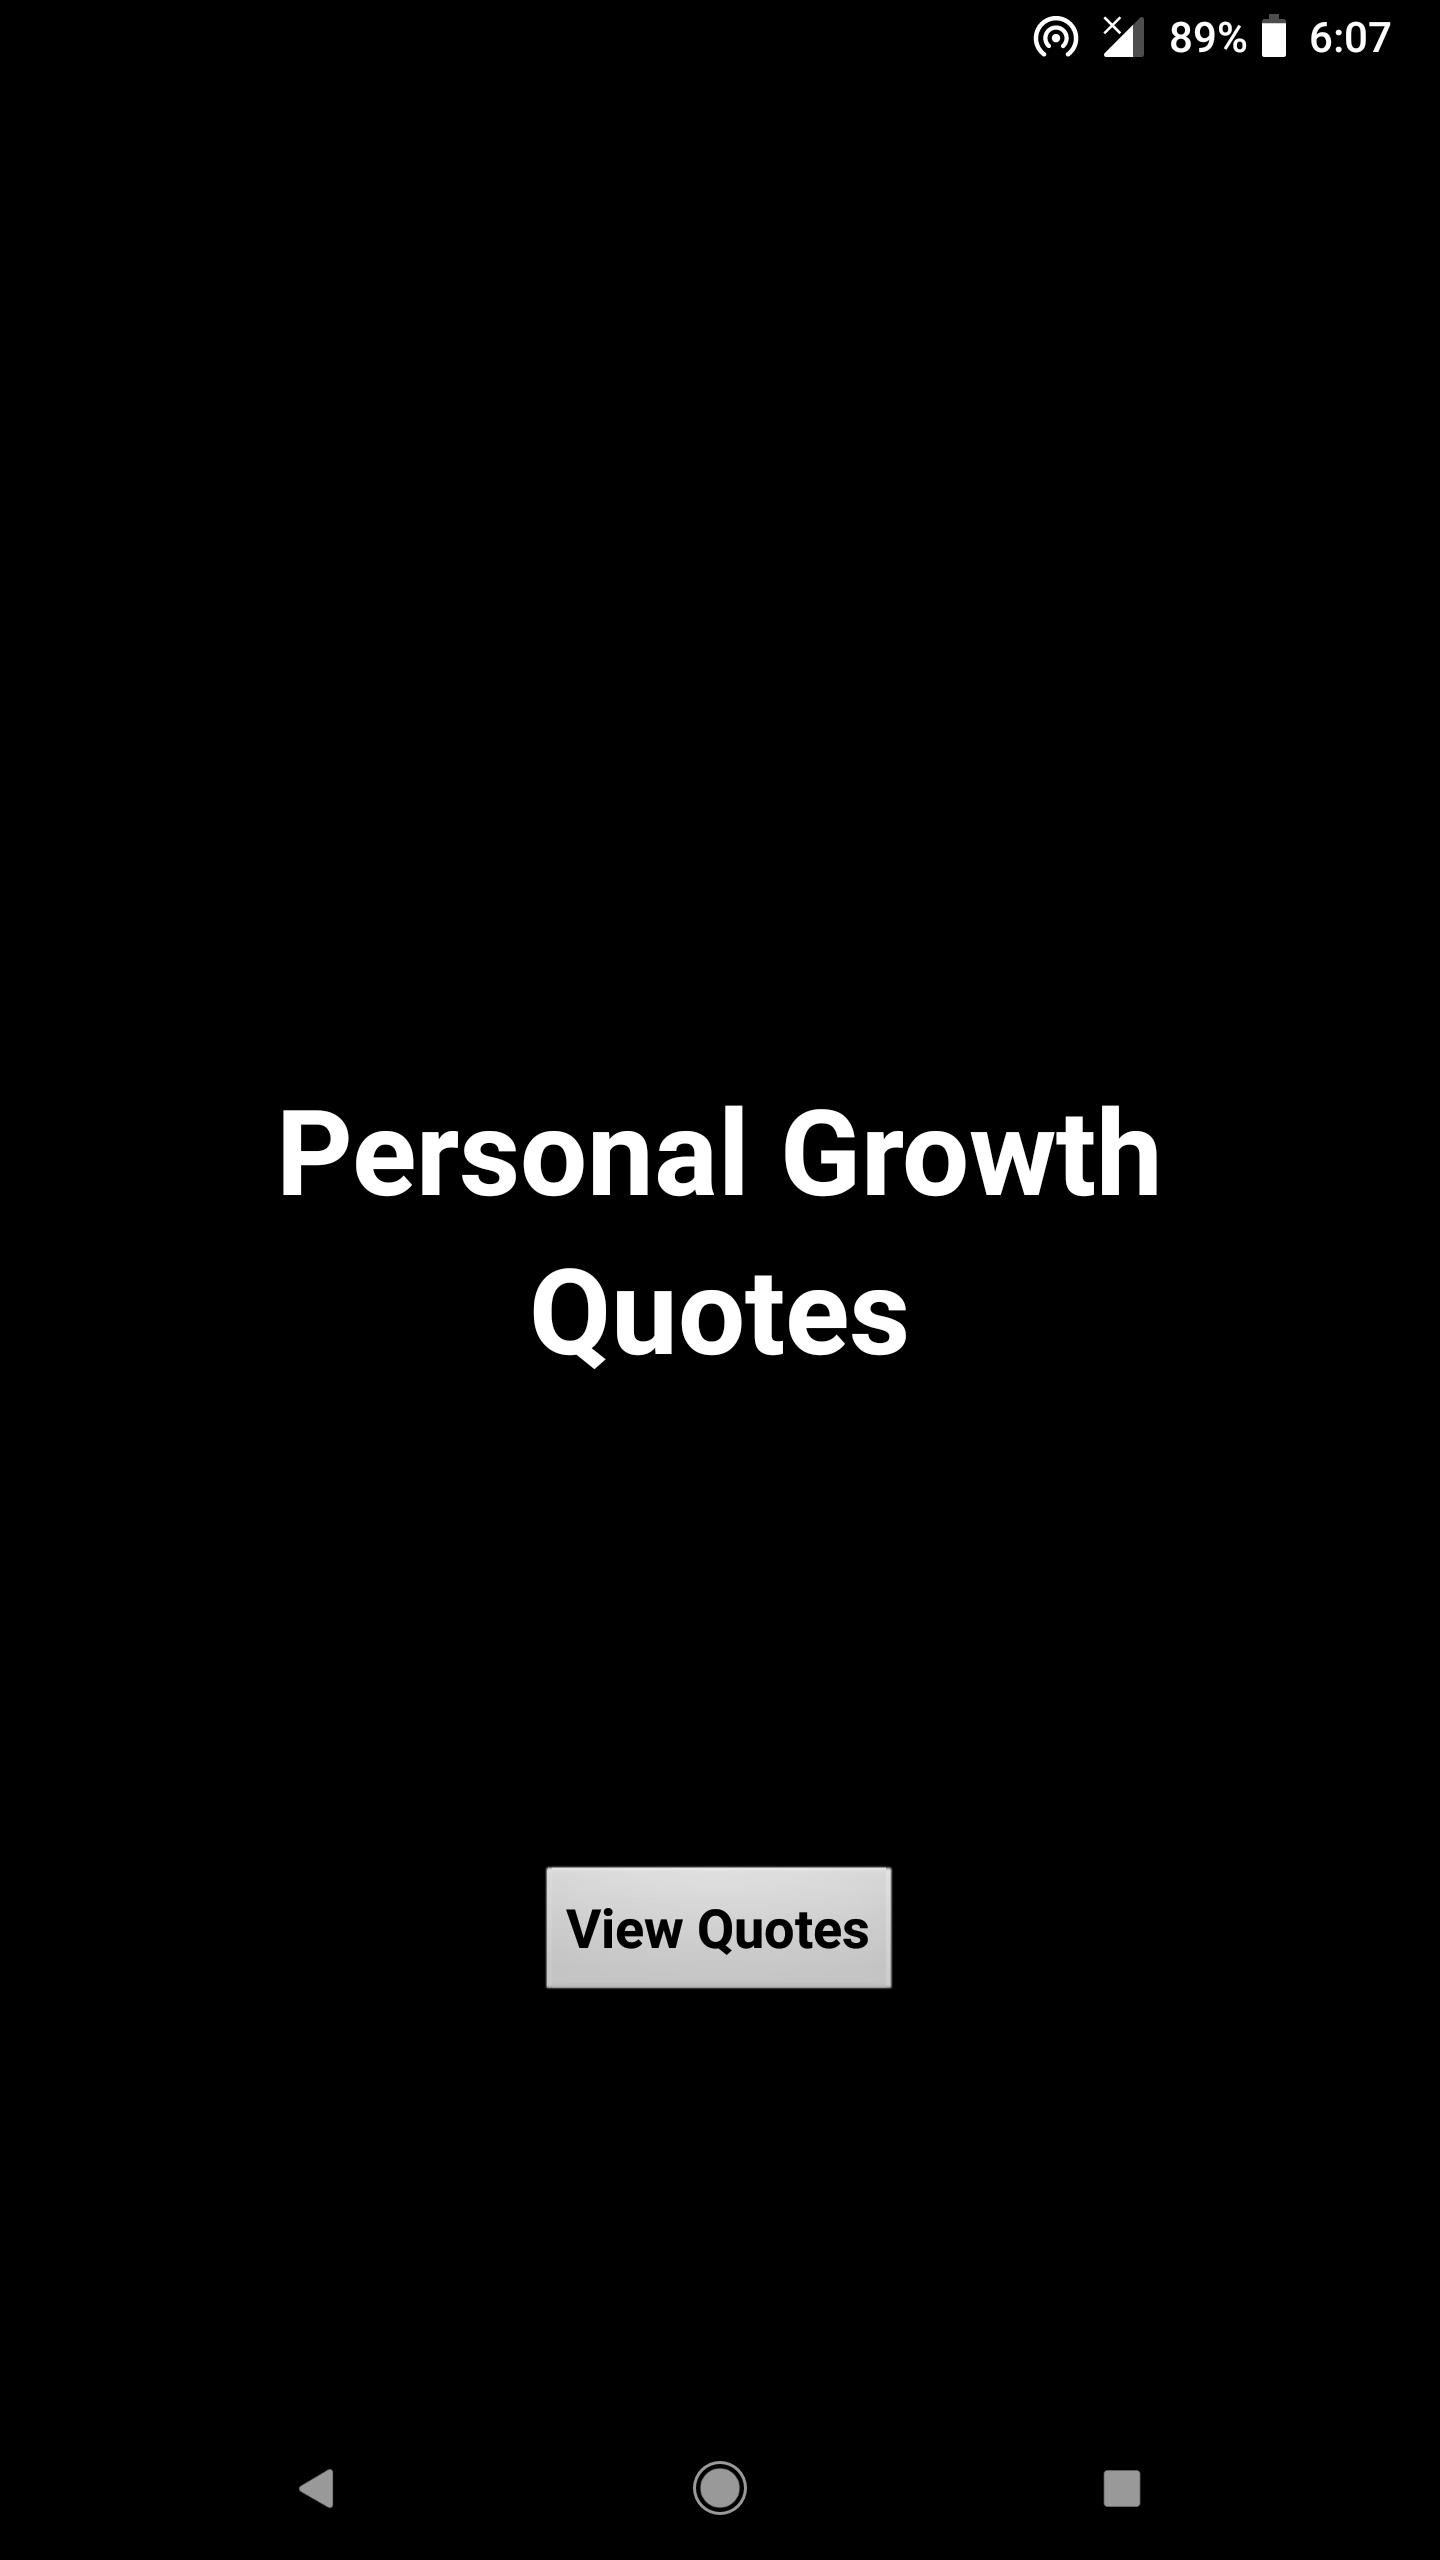 Personal Growth Quotes for Android - APK Download